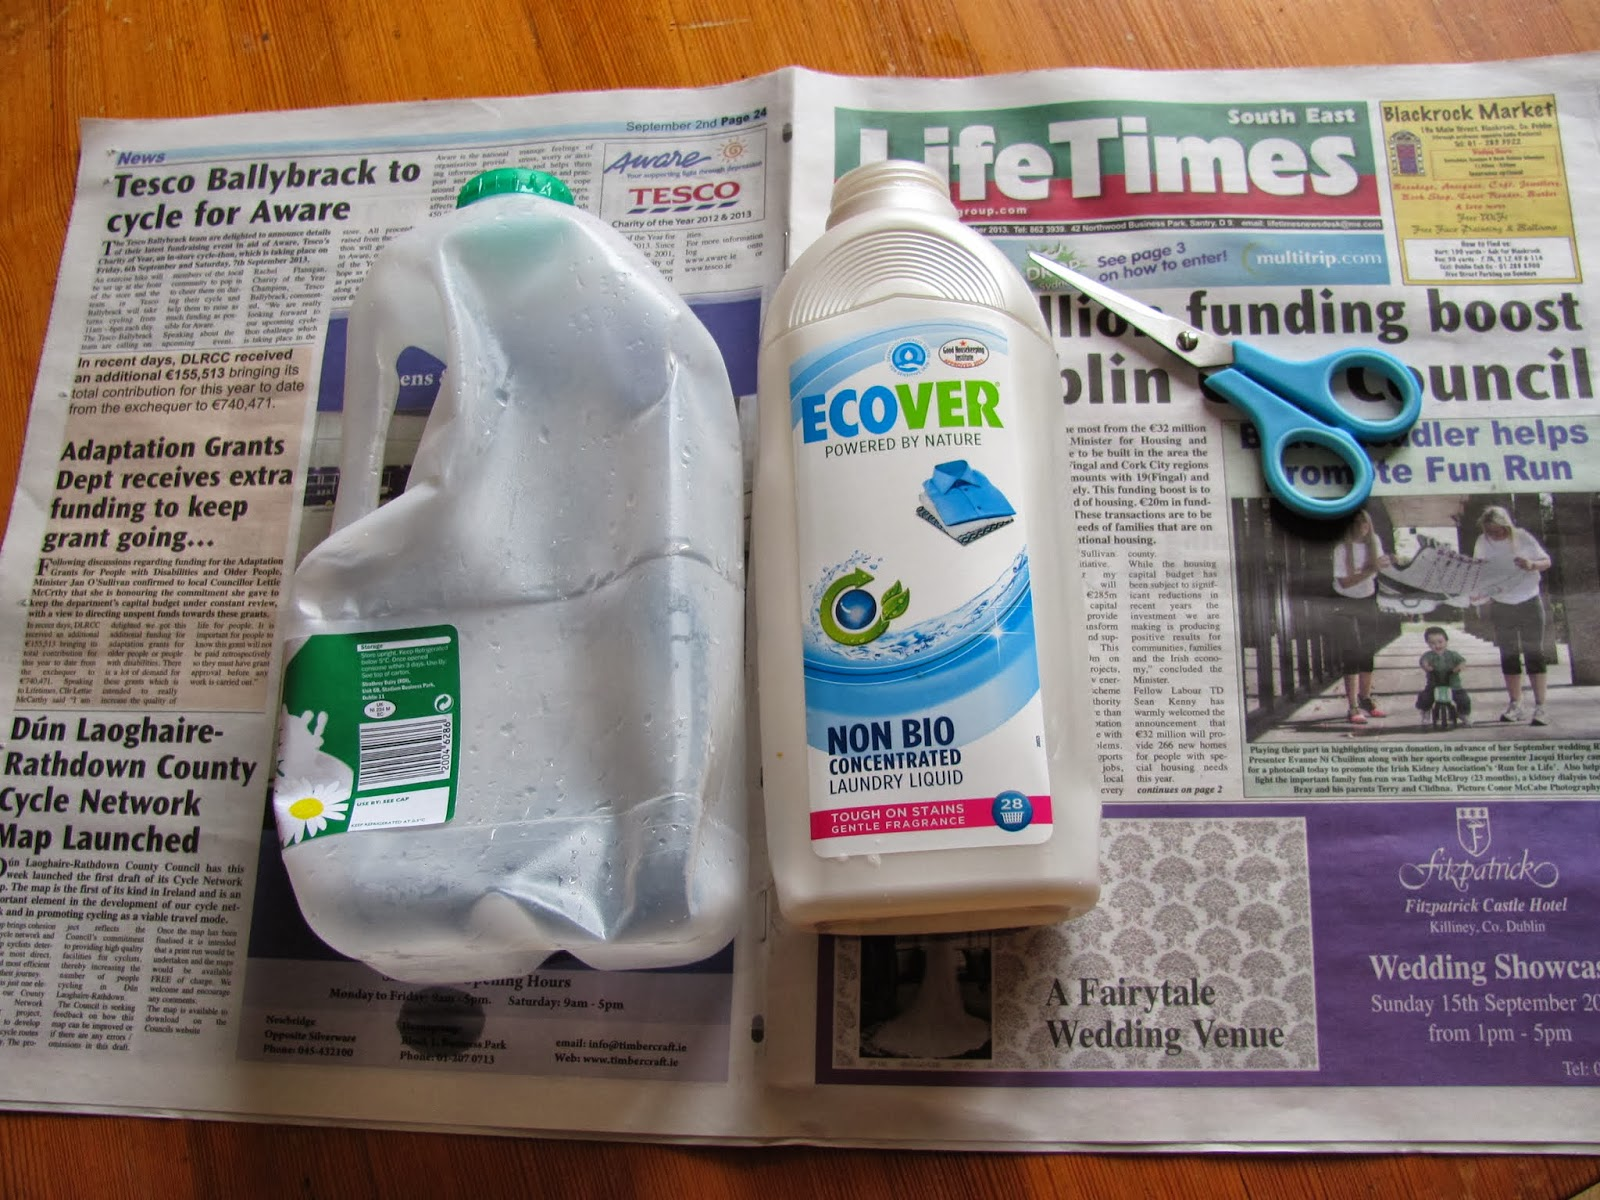 A milk jug and a laundry soap jug ready to be cut into bicycle fenders